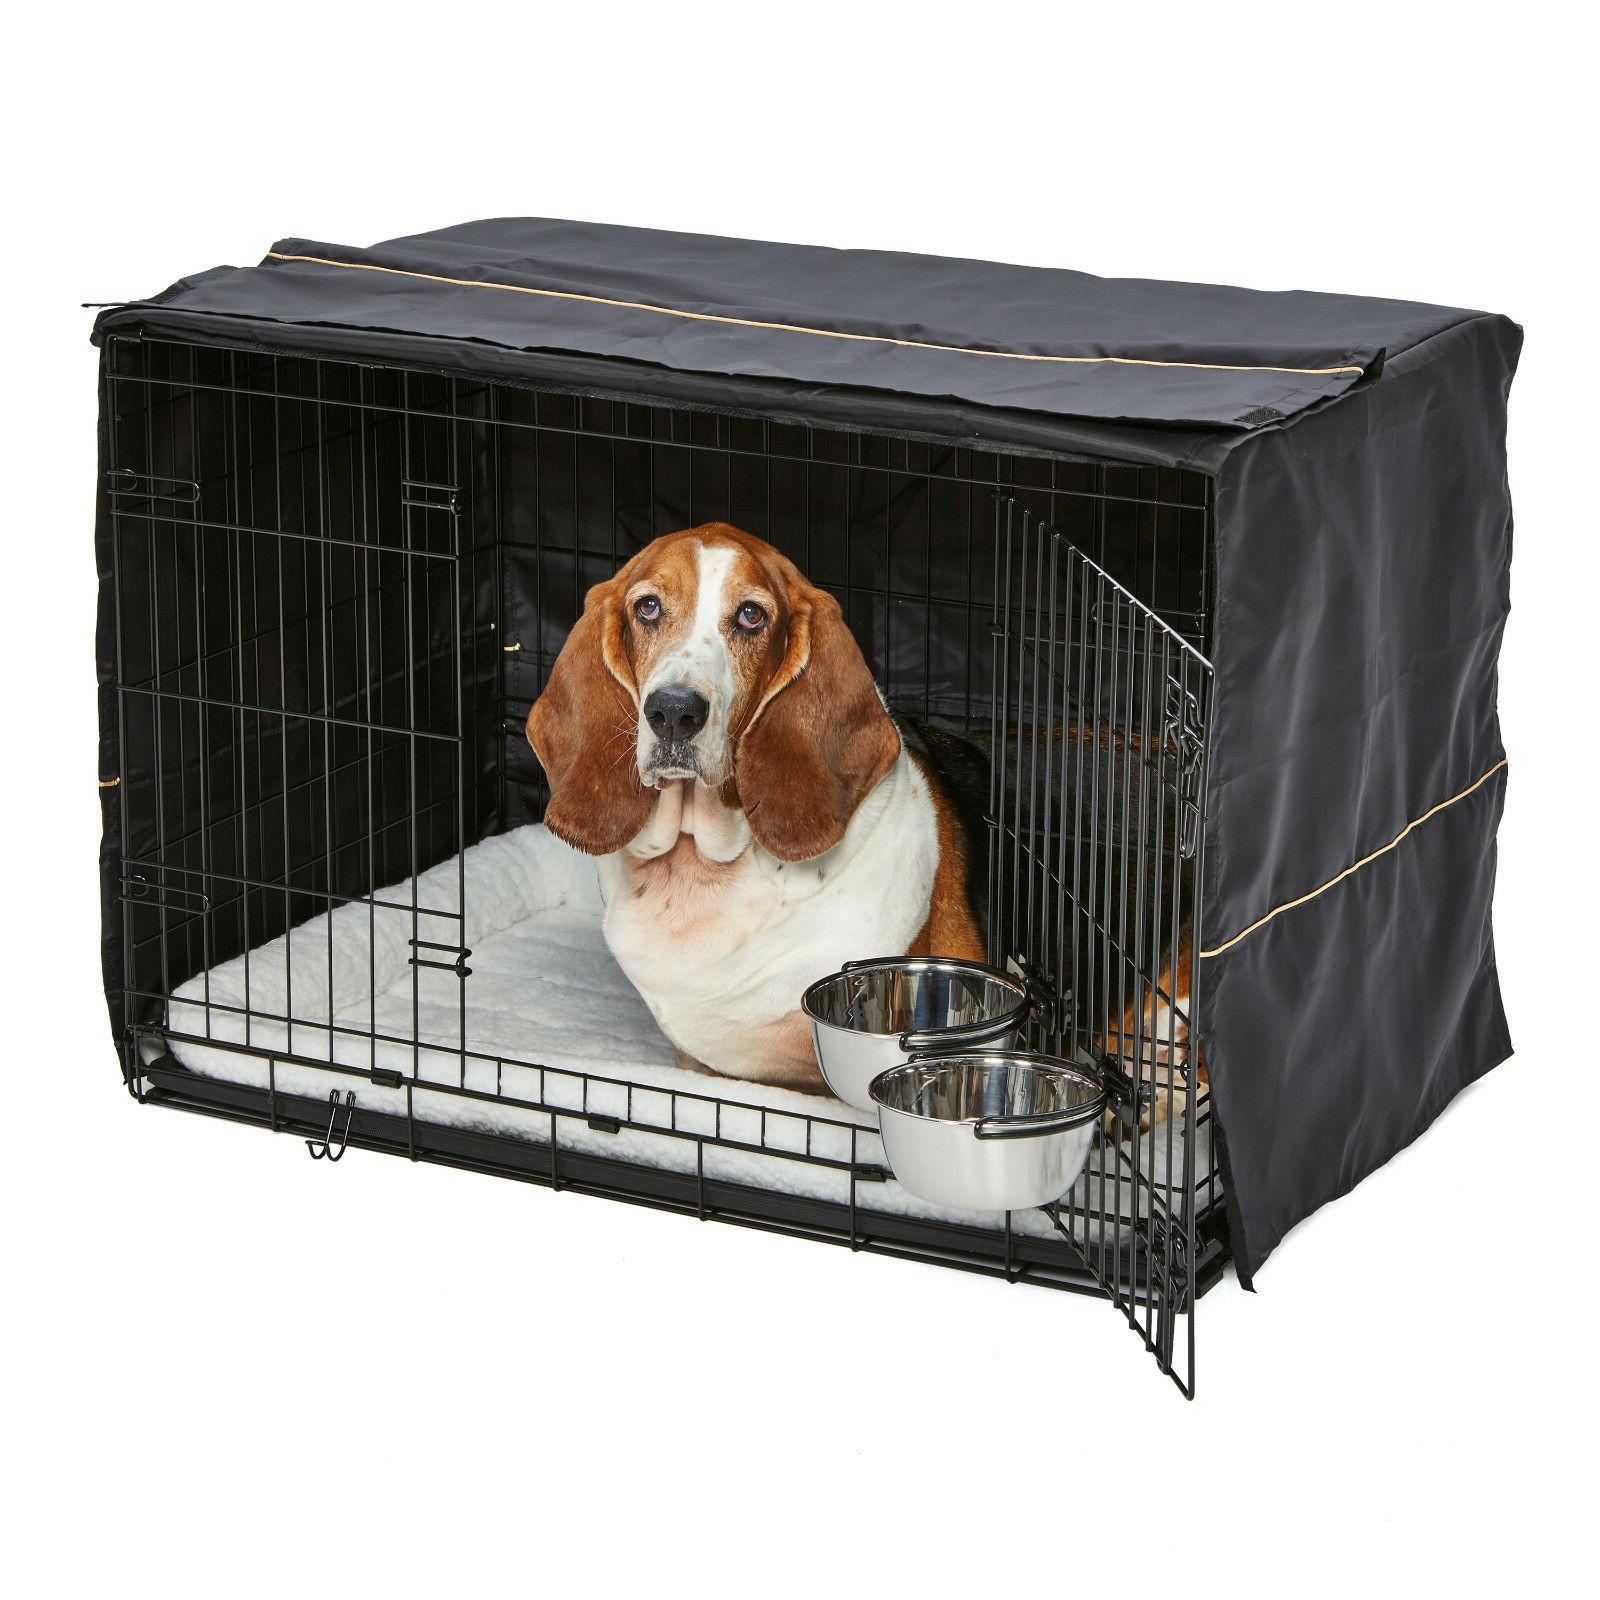 homes for pets dog crate starter kit